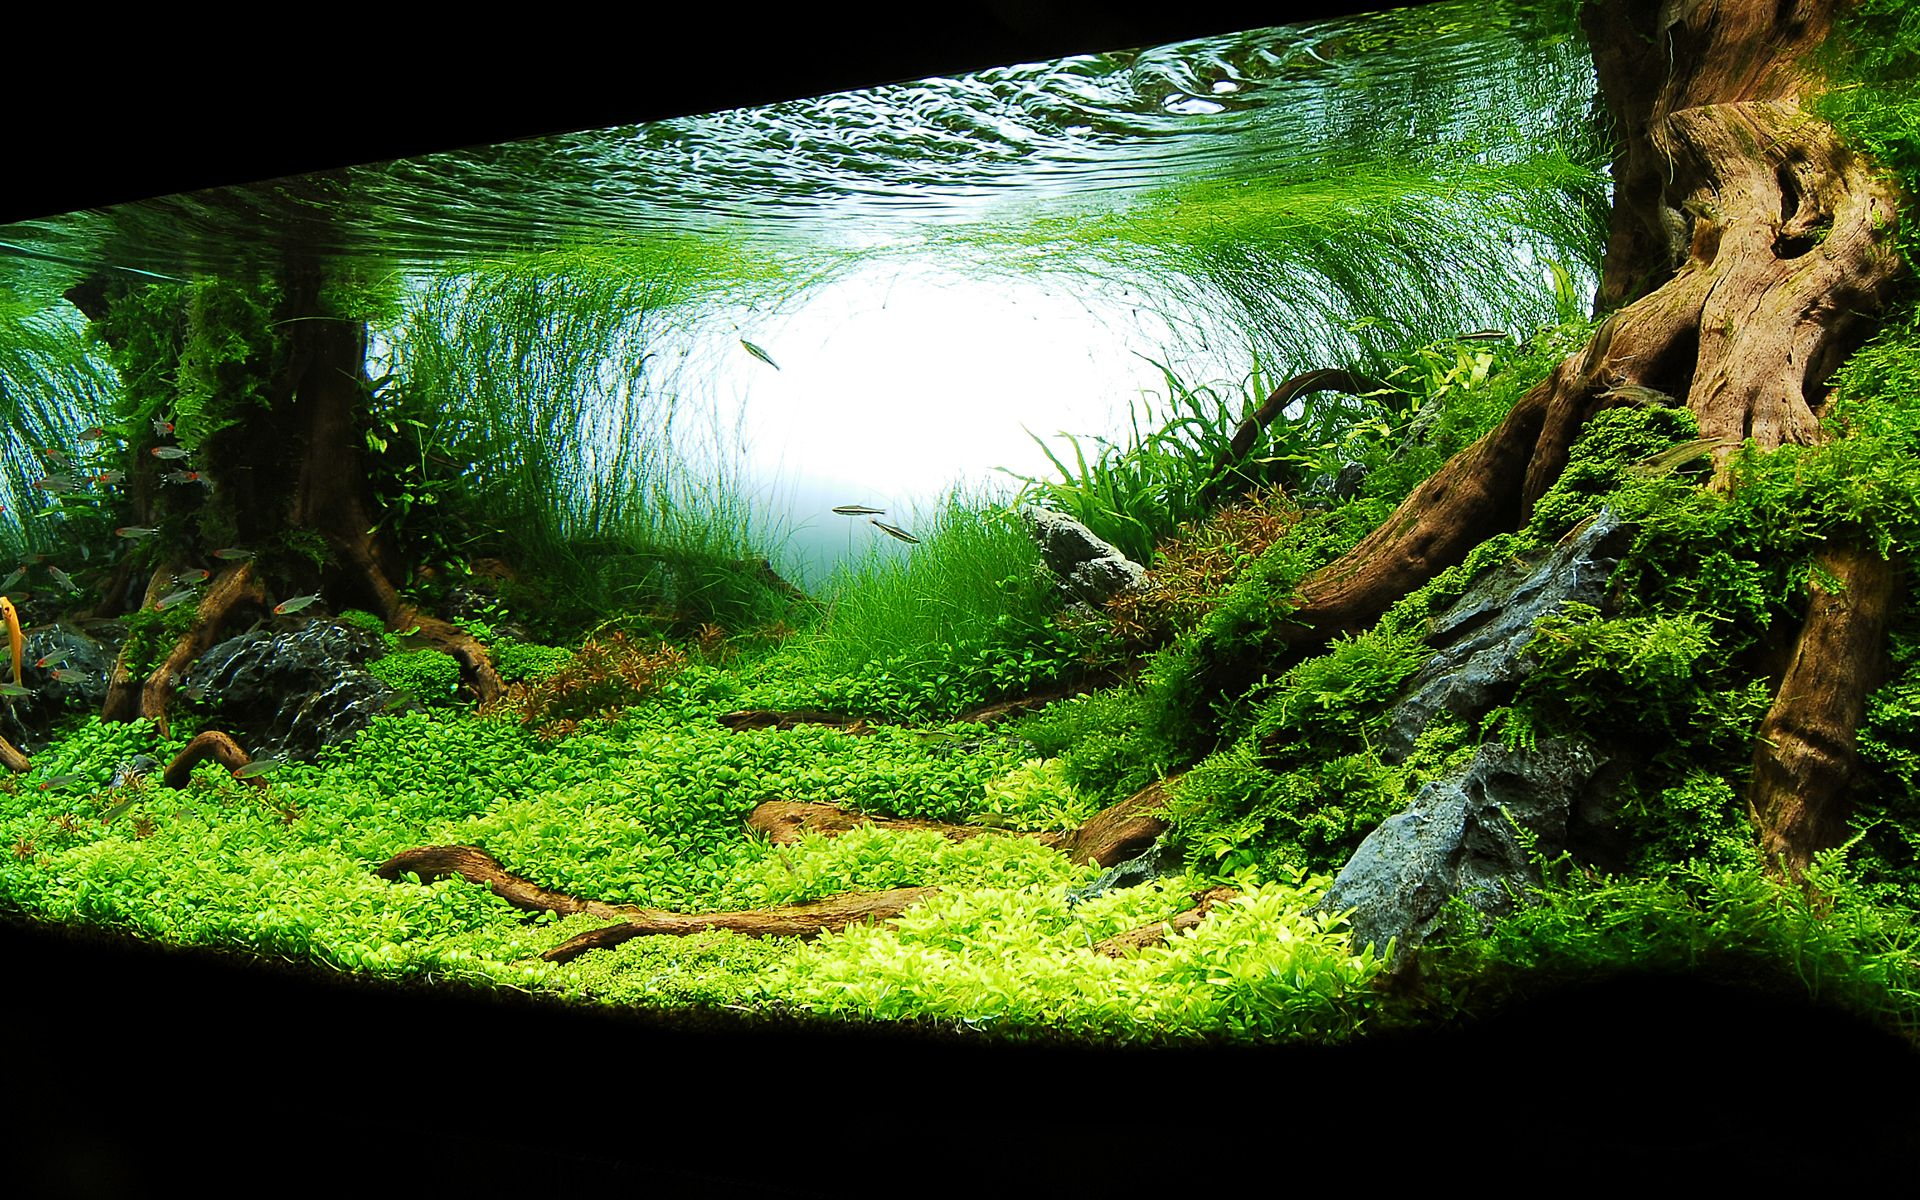 Aquarium wallpaper hd for Planted tank fish